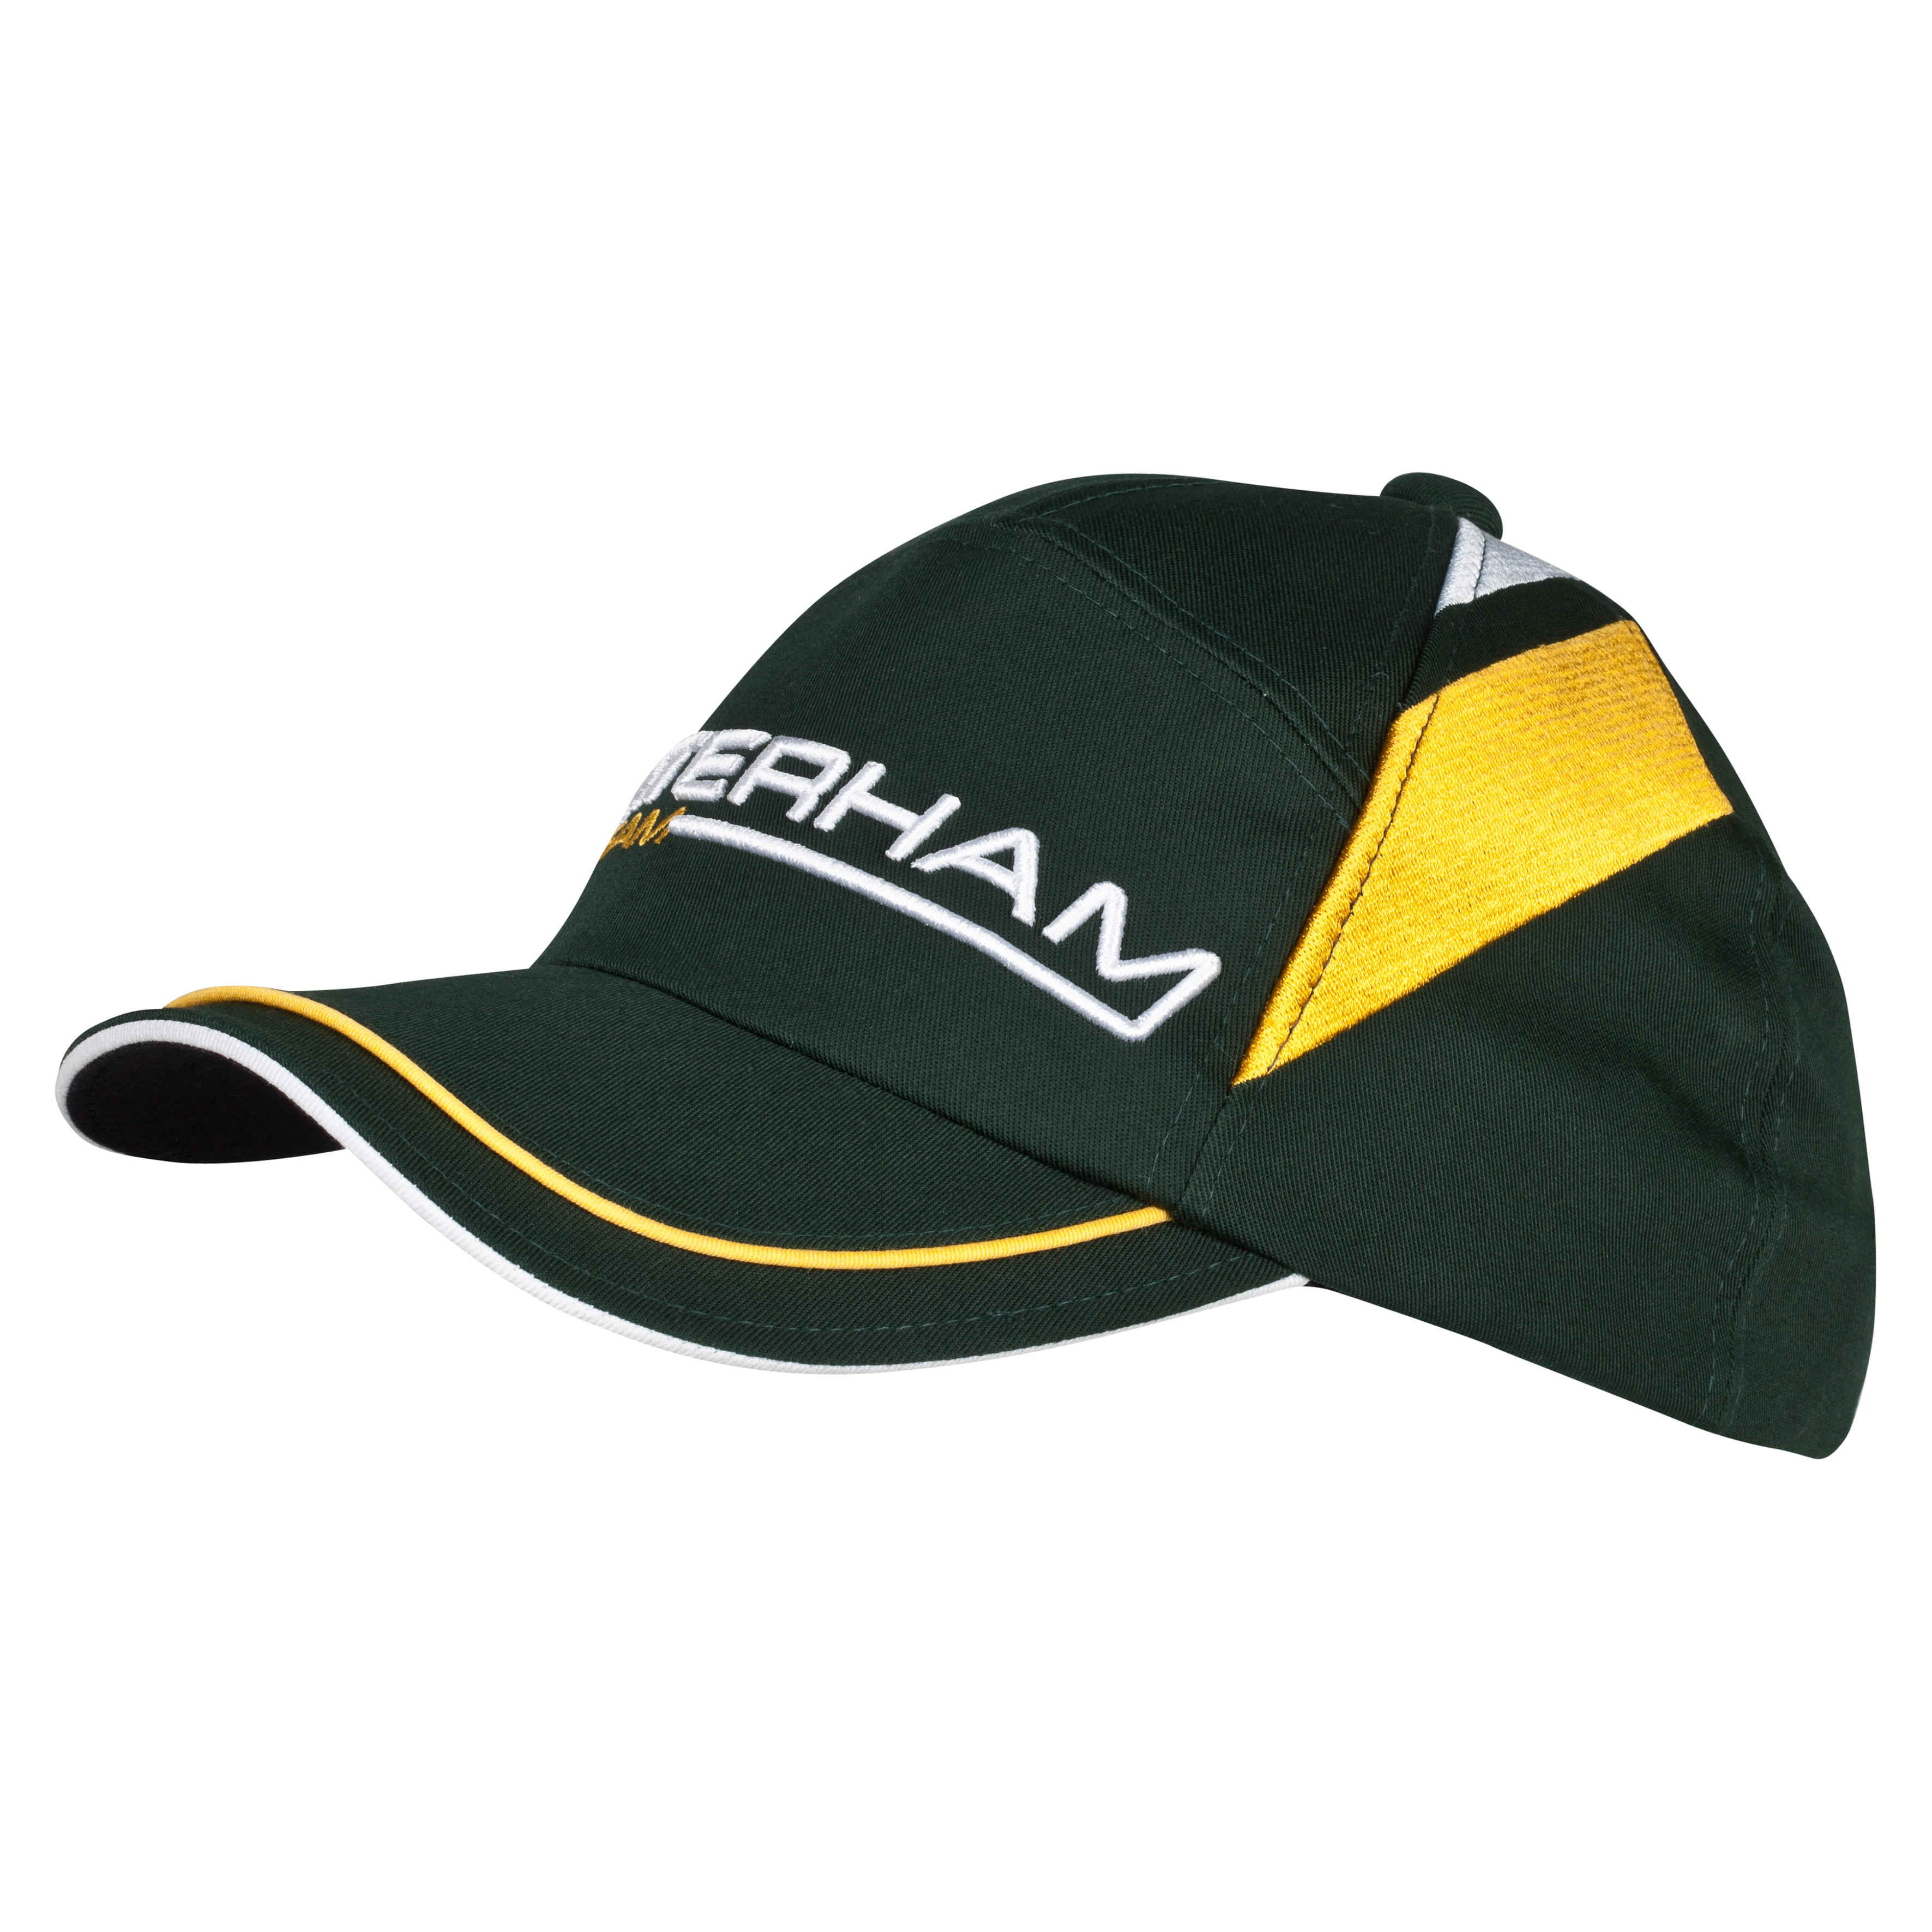 Caterham F1 Team Replica Cap